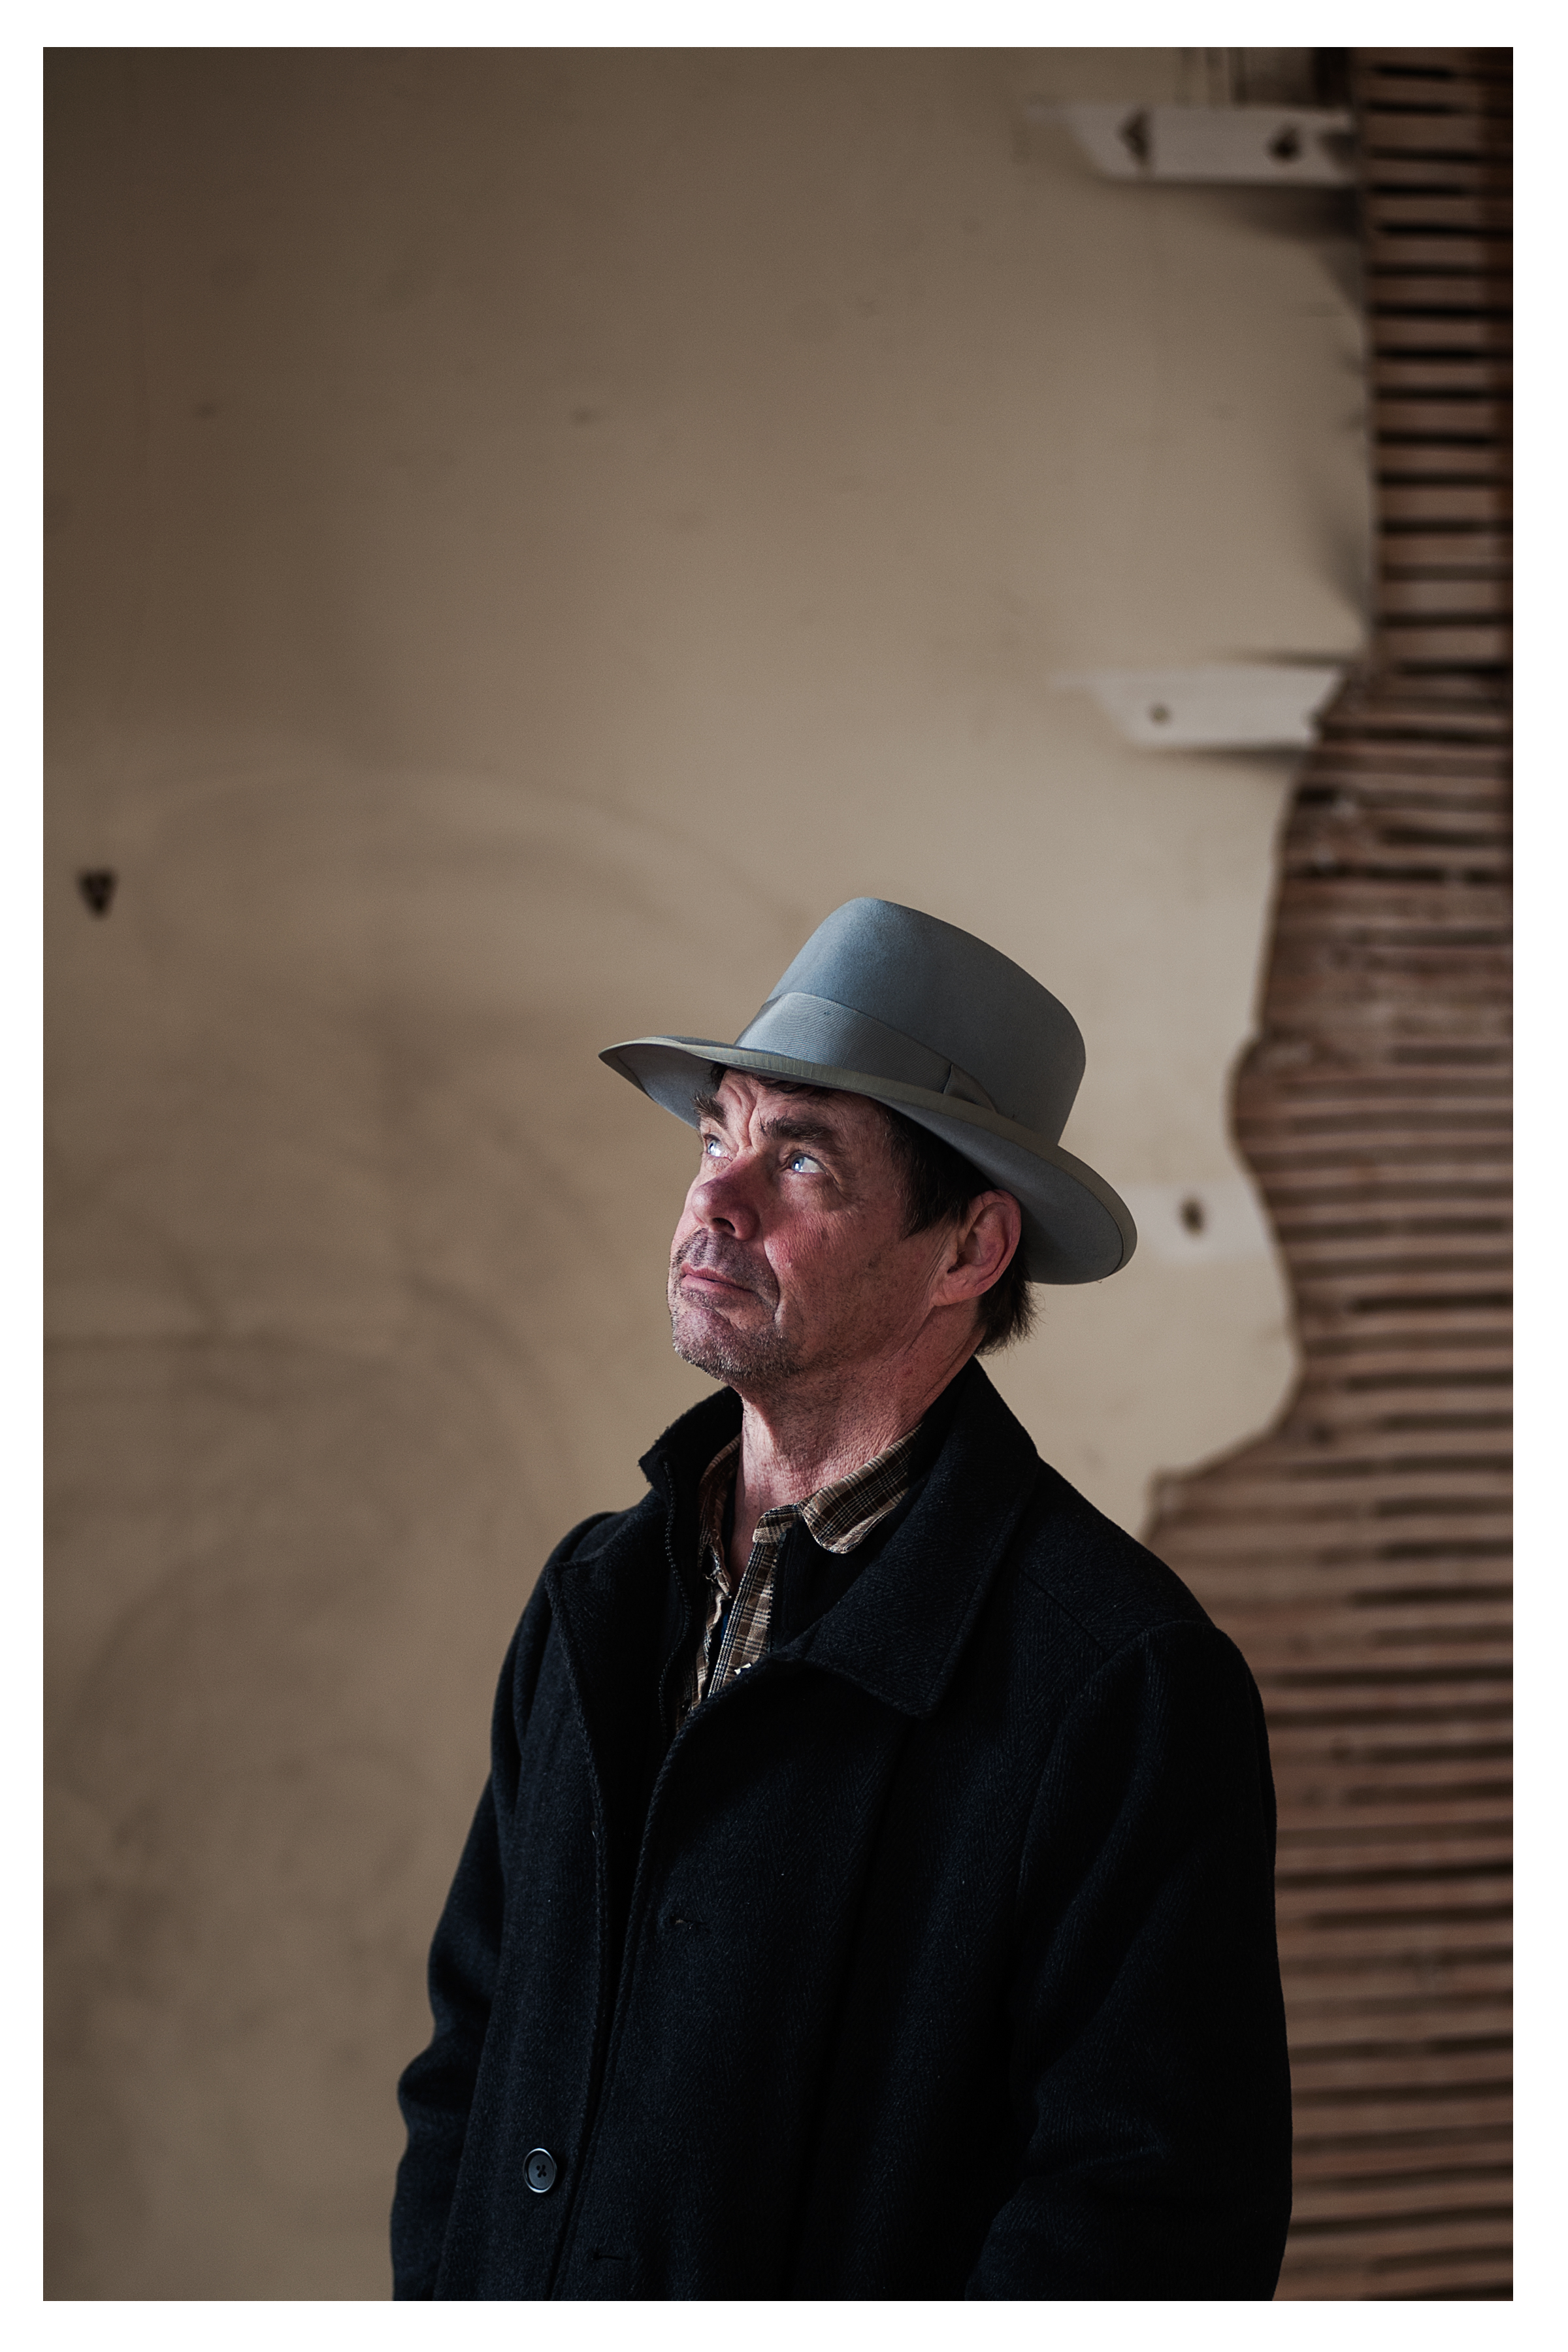 Rich Hall by Roddy Hand